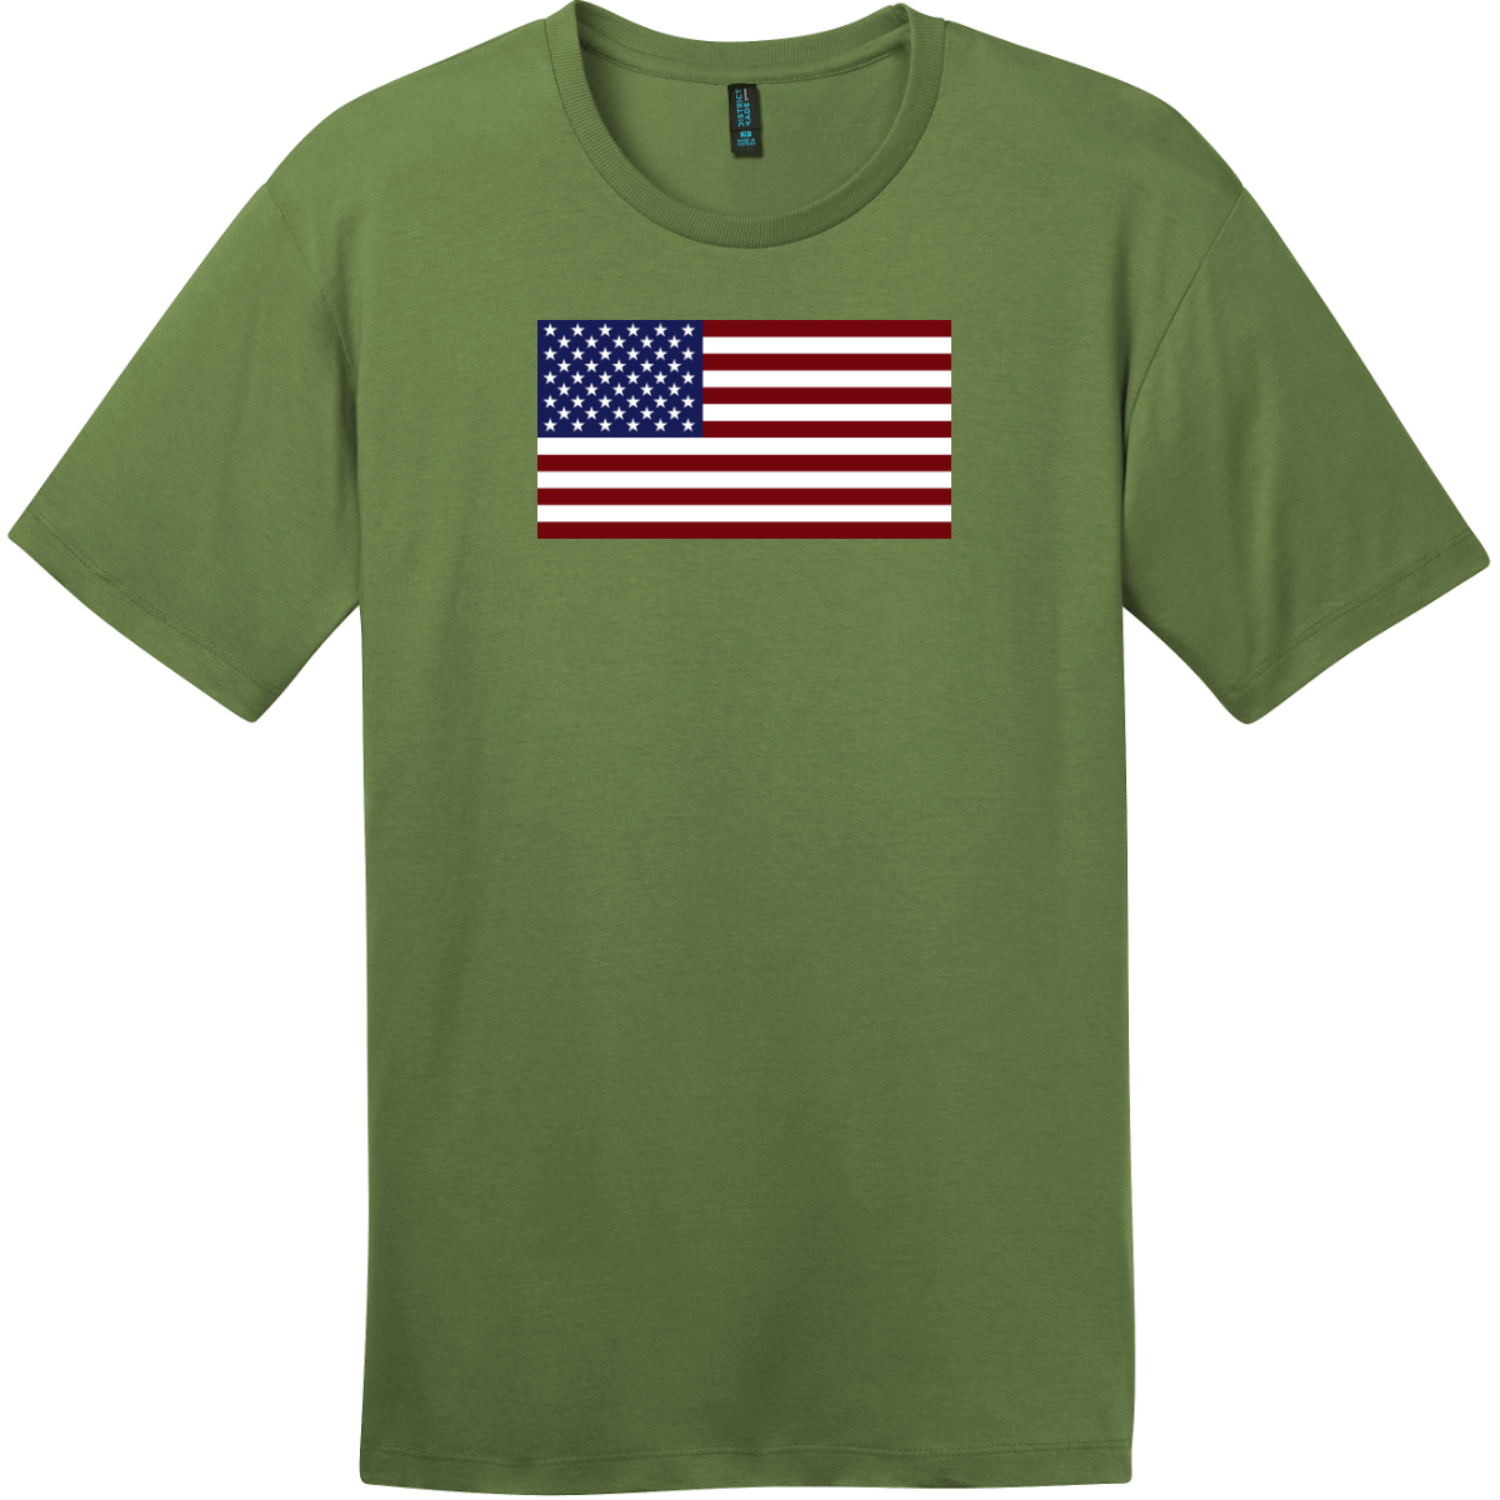 United States of America Flag T-Shirt Fresh Fatigue District Perfect Weight Tee DT104